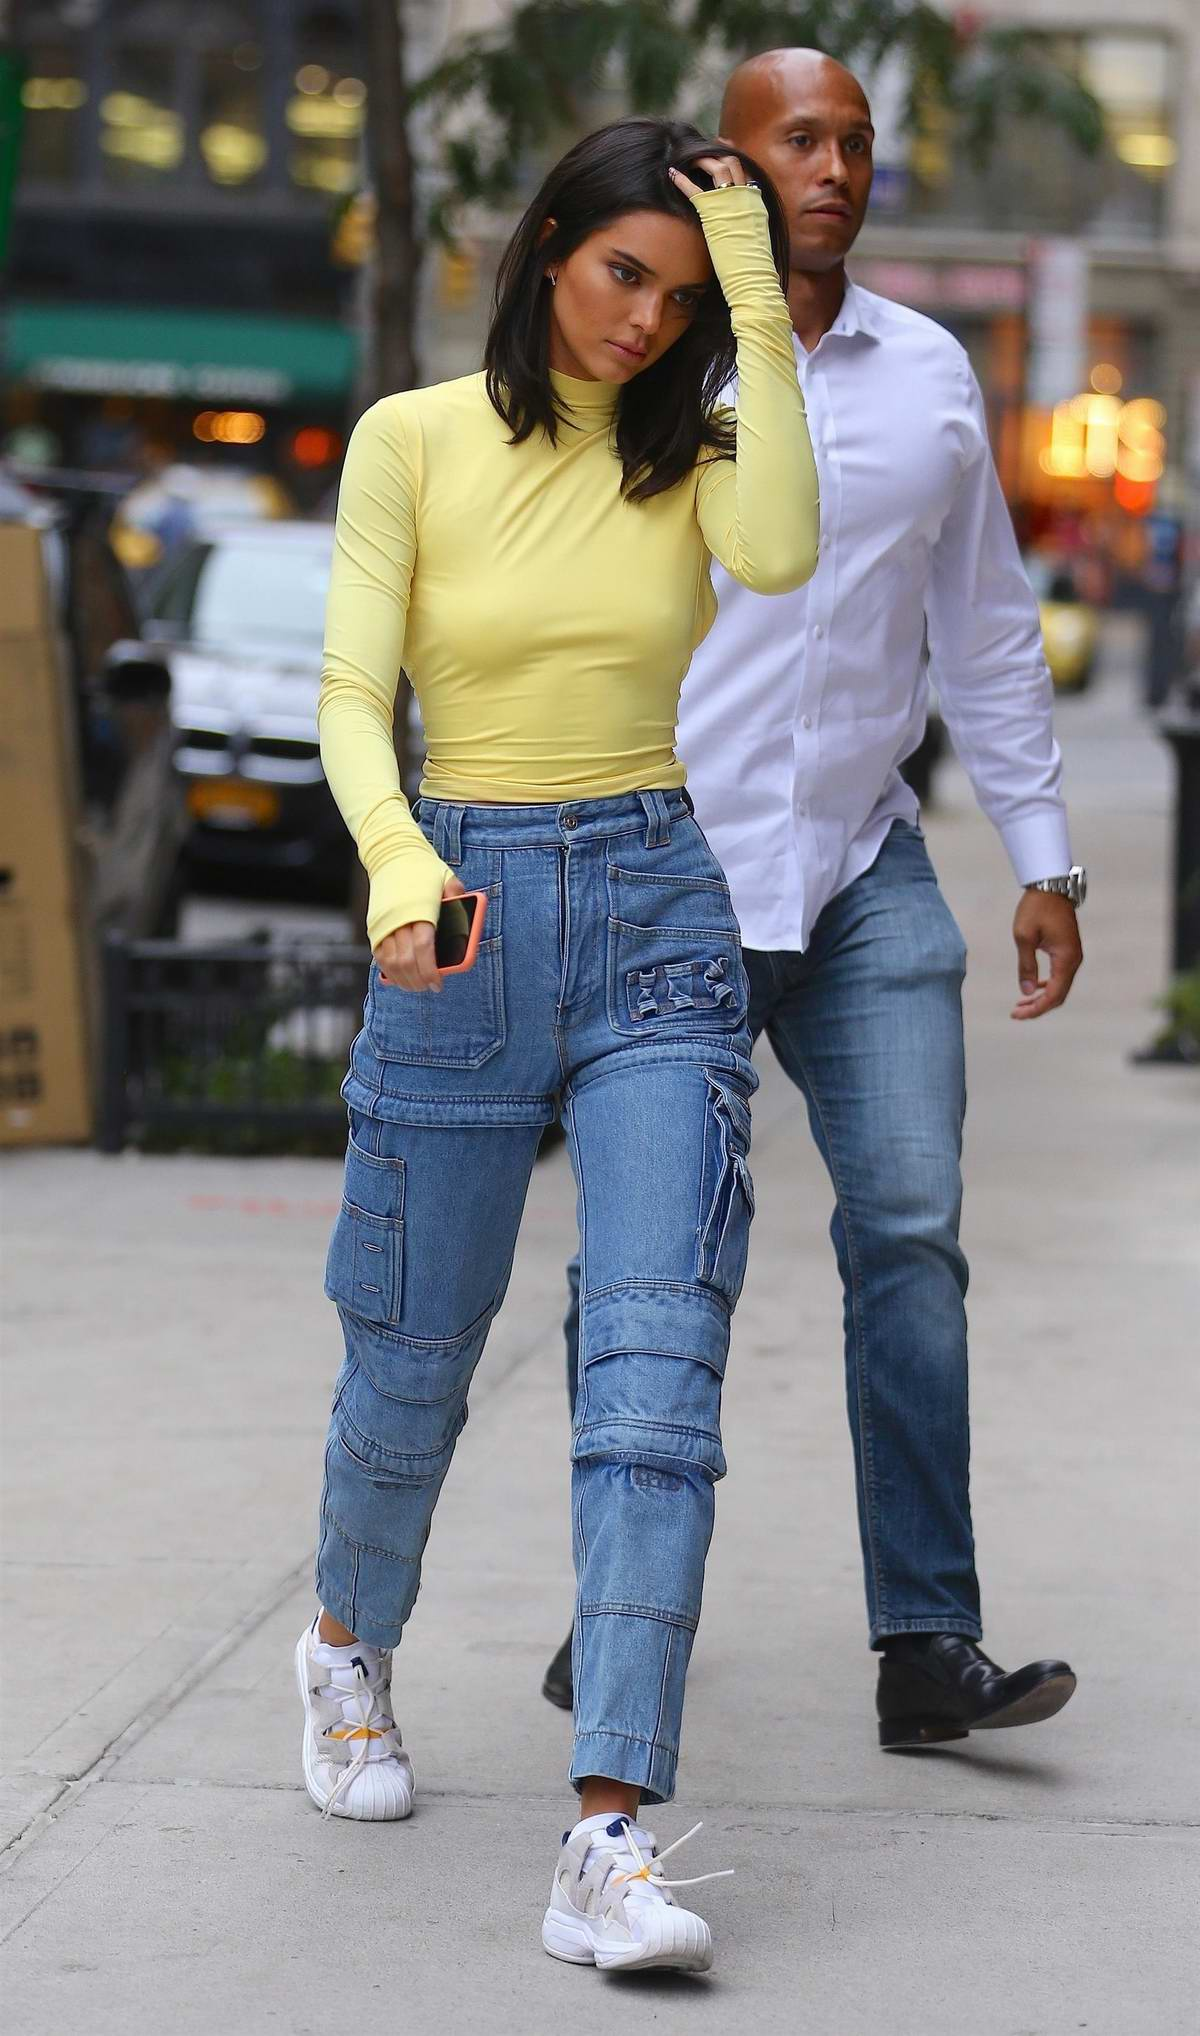 Kendall Jenner seen wearing a neon top with high waisted jeans and sneakers as she leaves Bar Pitti in New York City